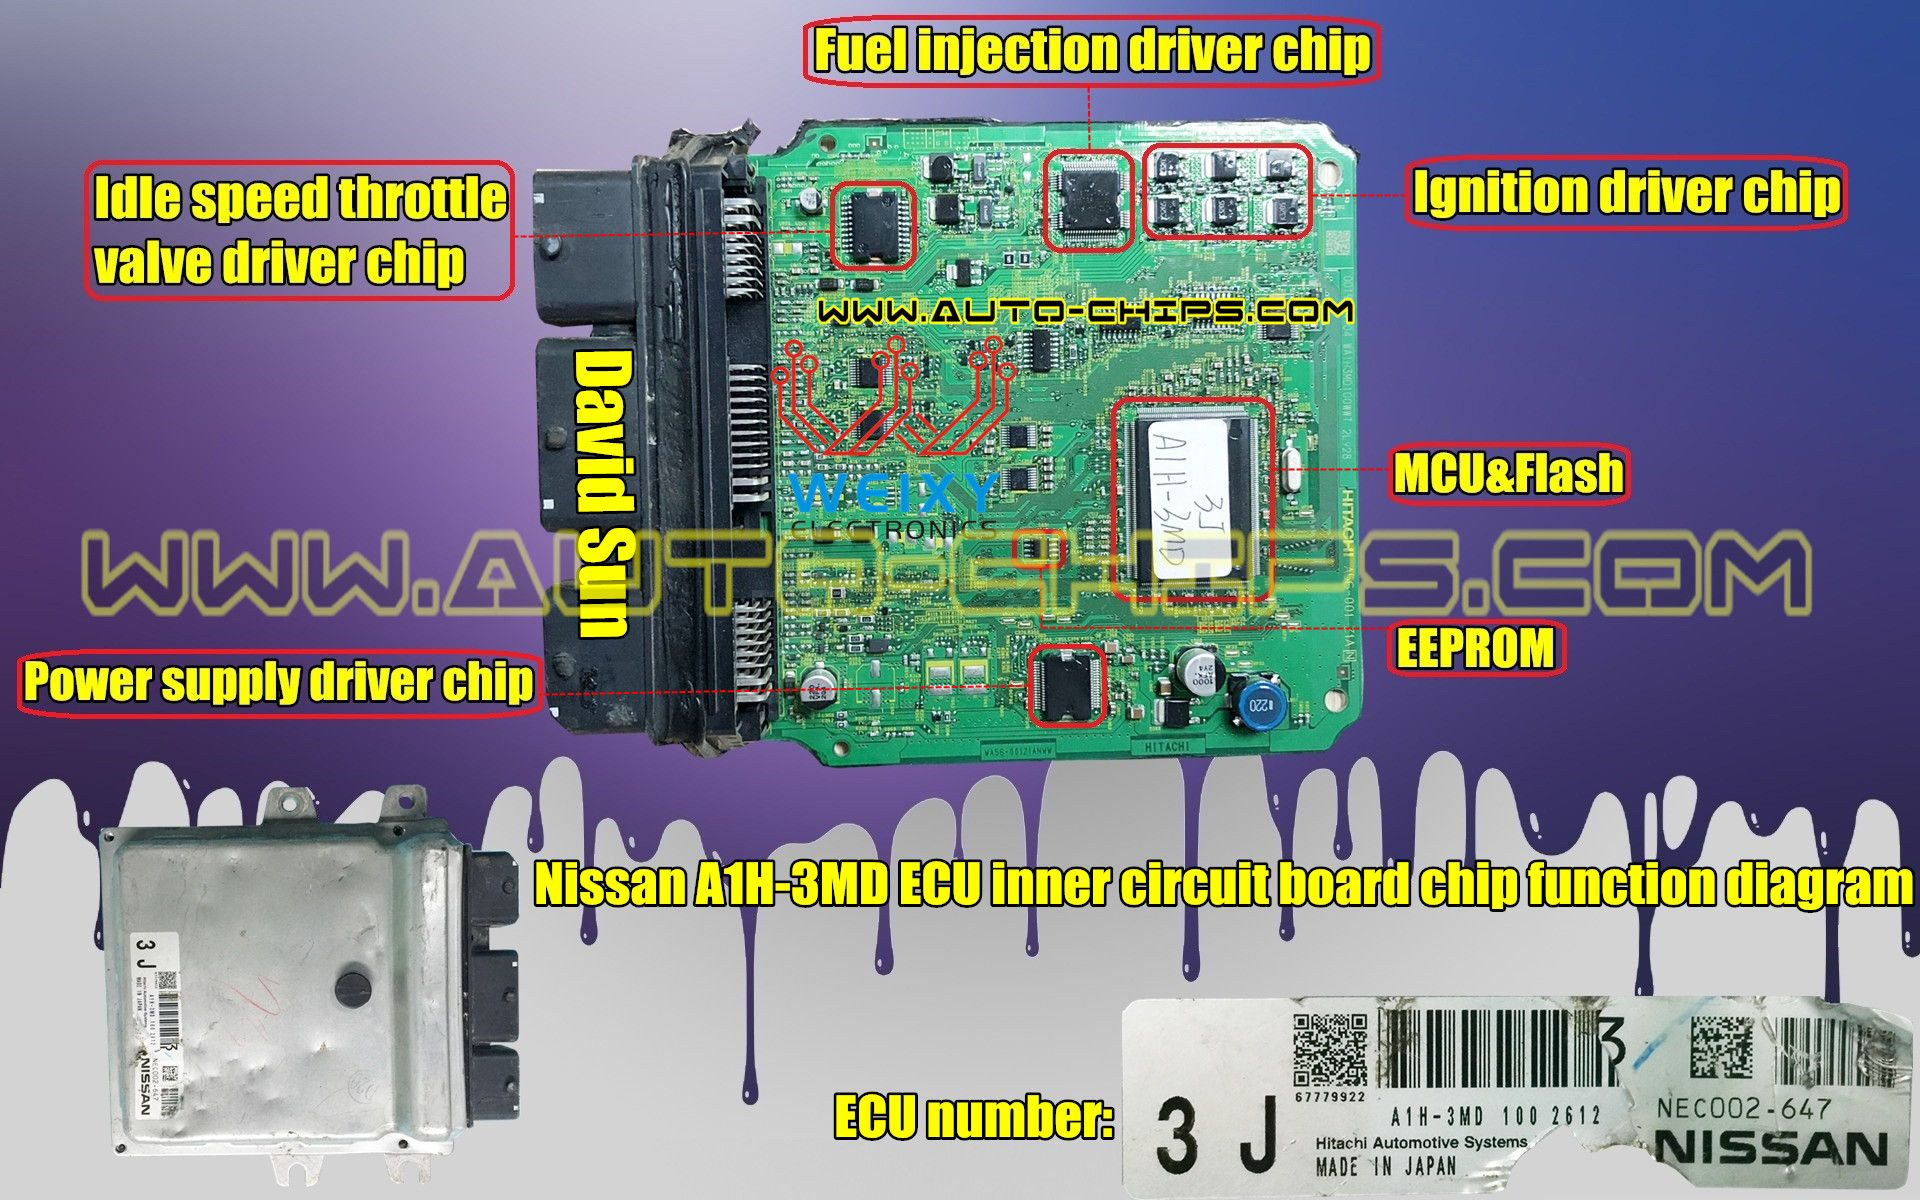 nissan a1h 3md ecu inner circuit board chip function diagram we supply all kinds of [ 1920 x 1200 Pixel ]